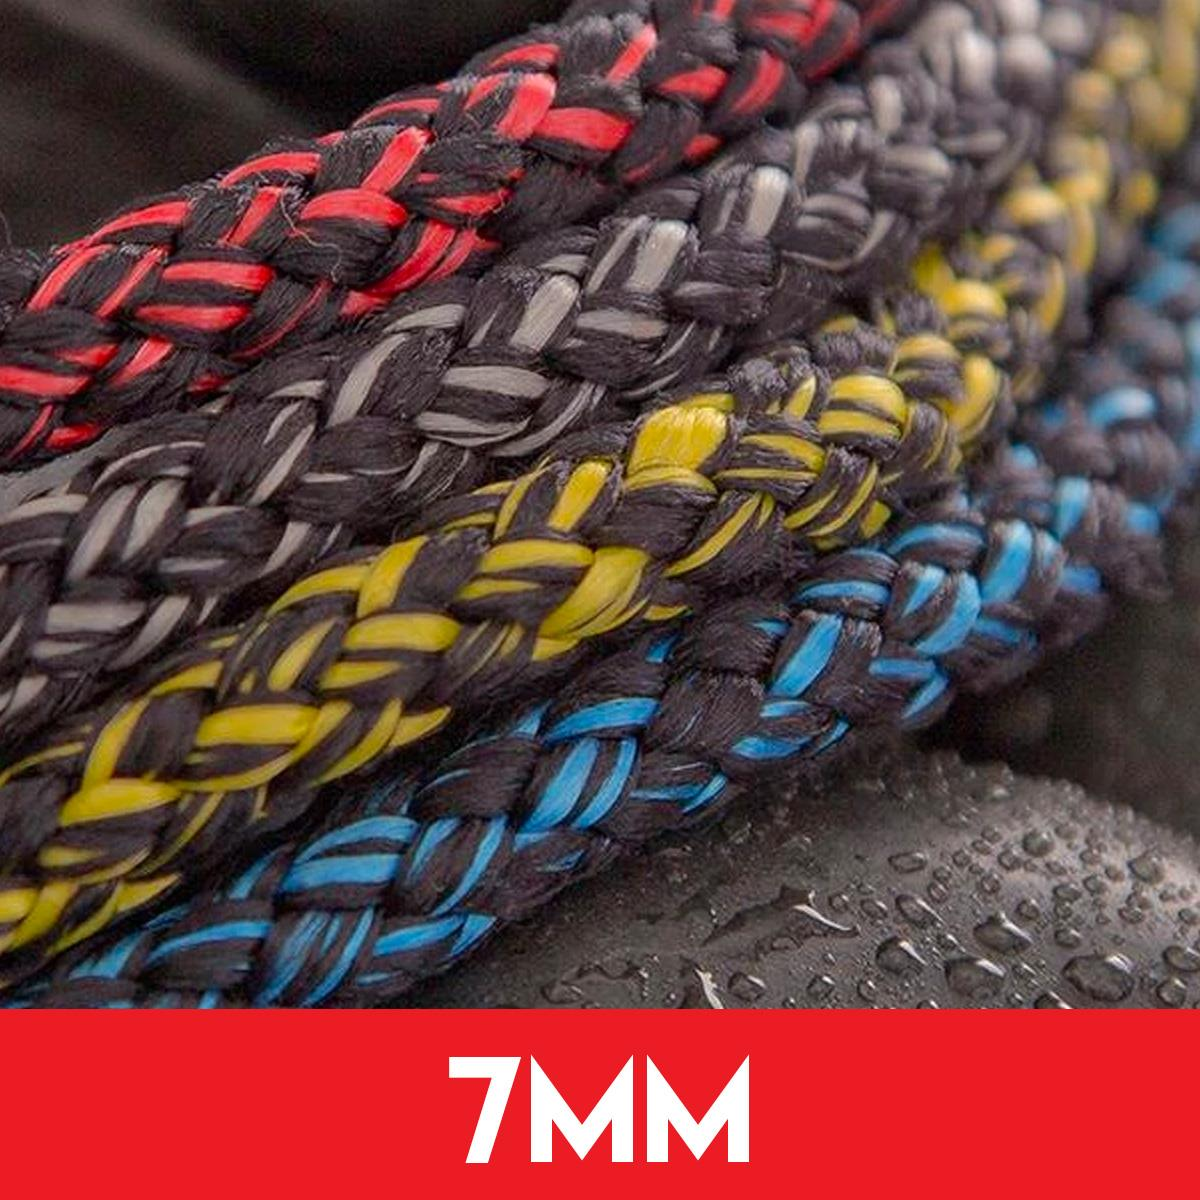 7mm Gottifredi Maffioli Swiftcord Rope